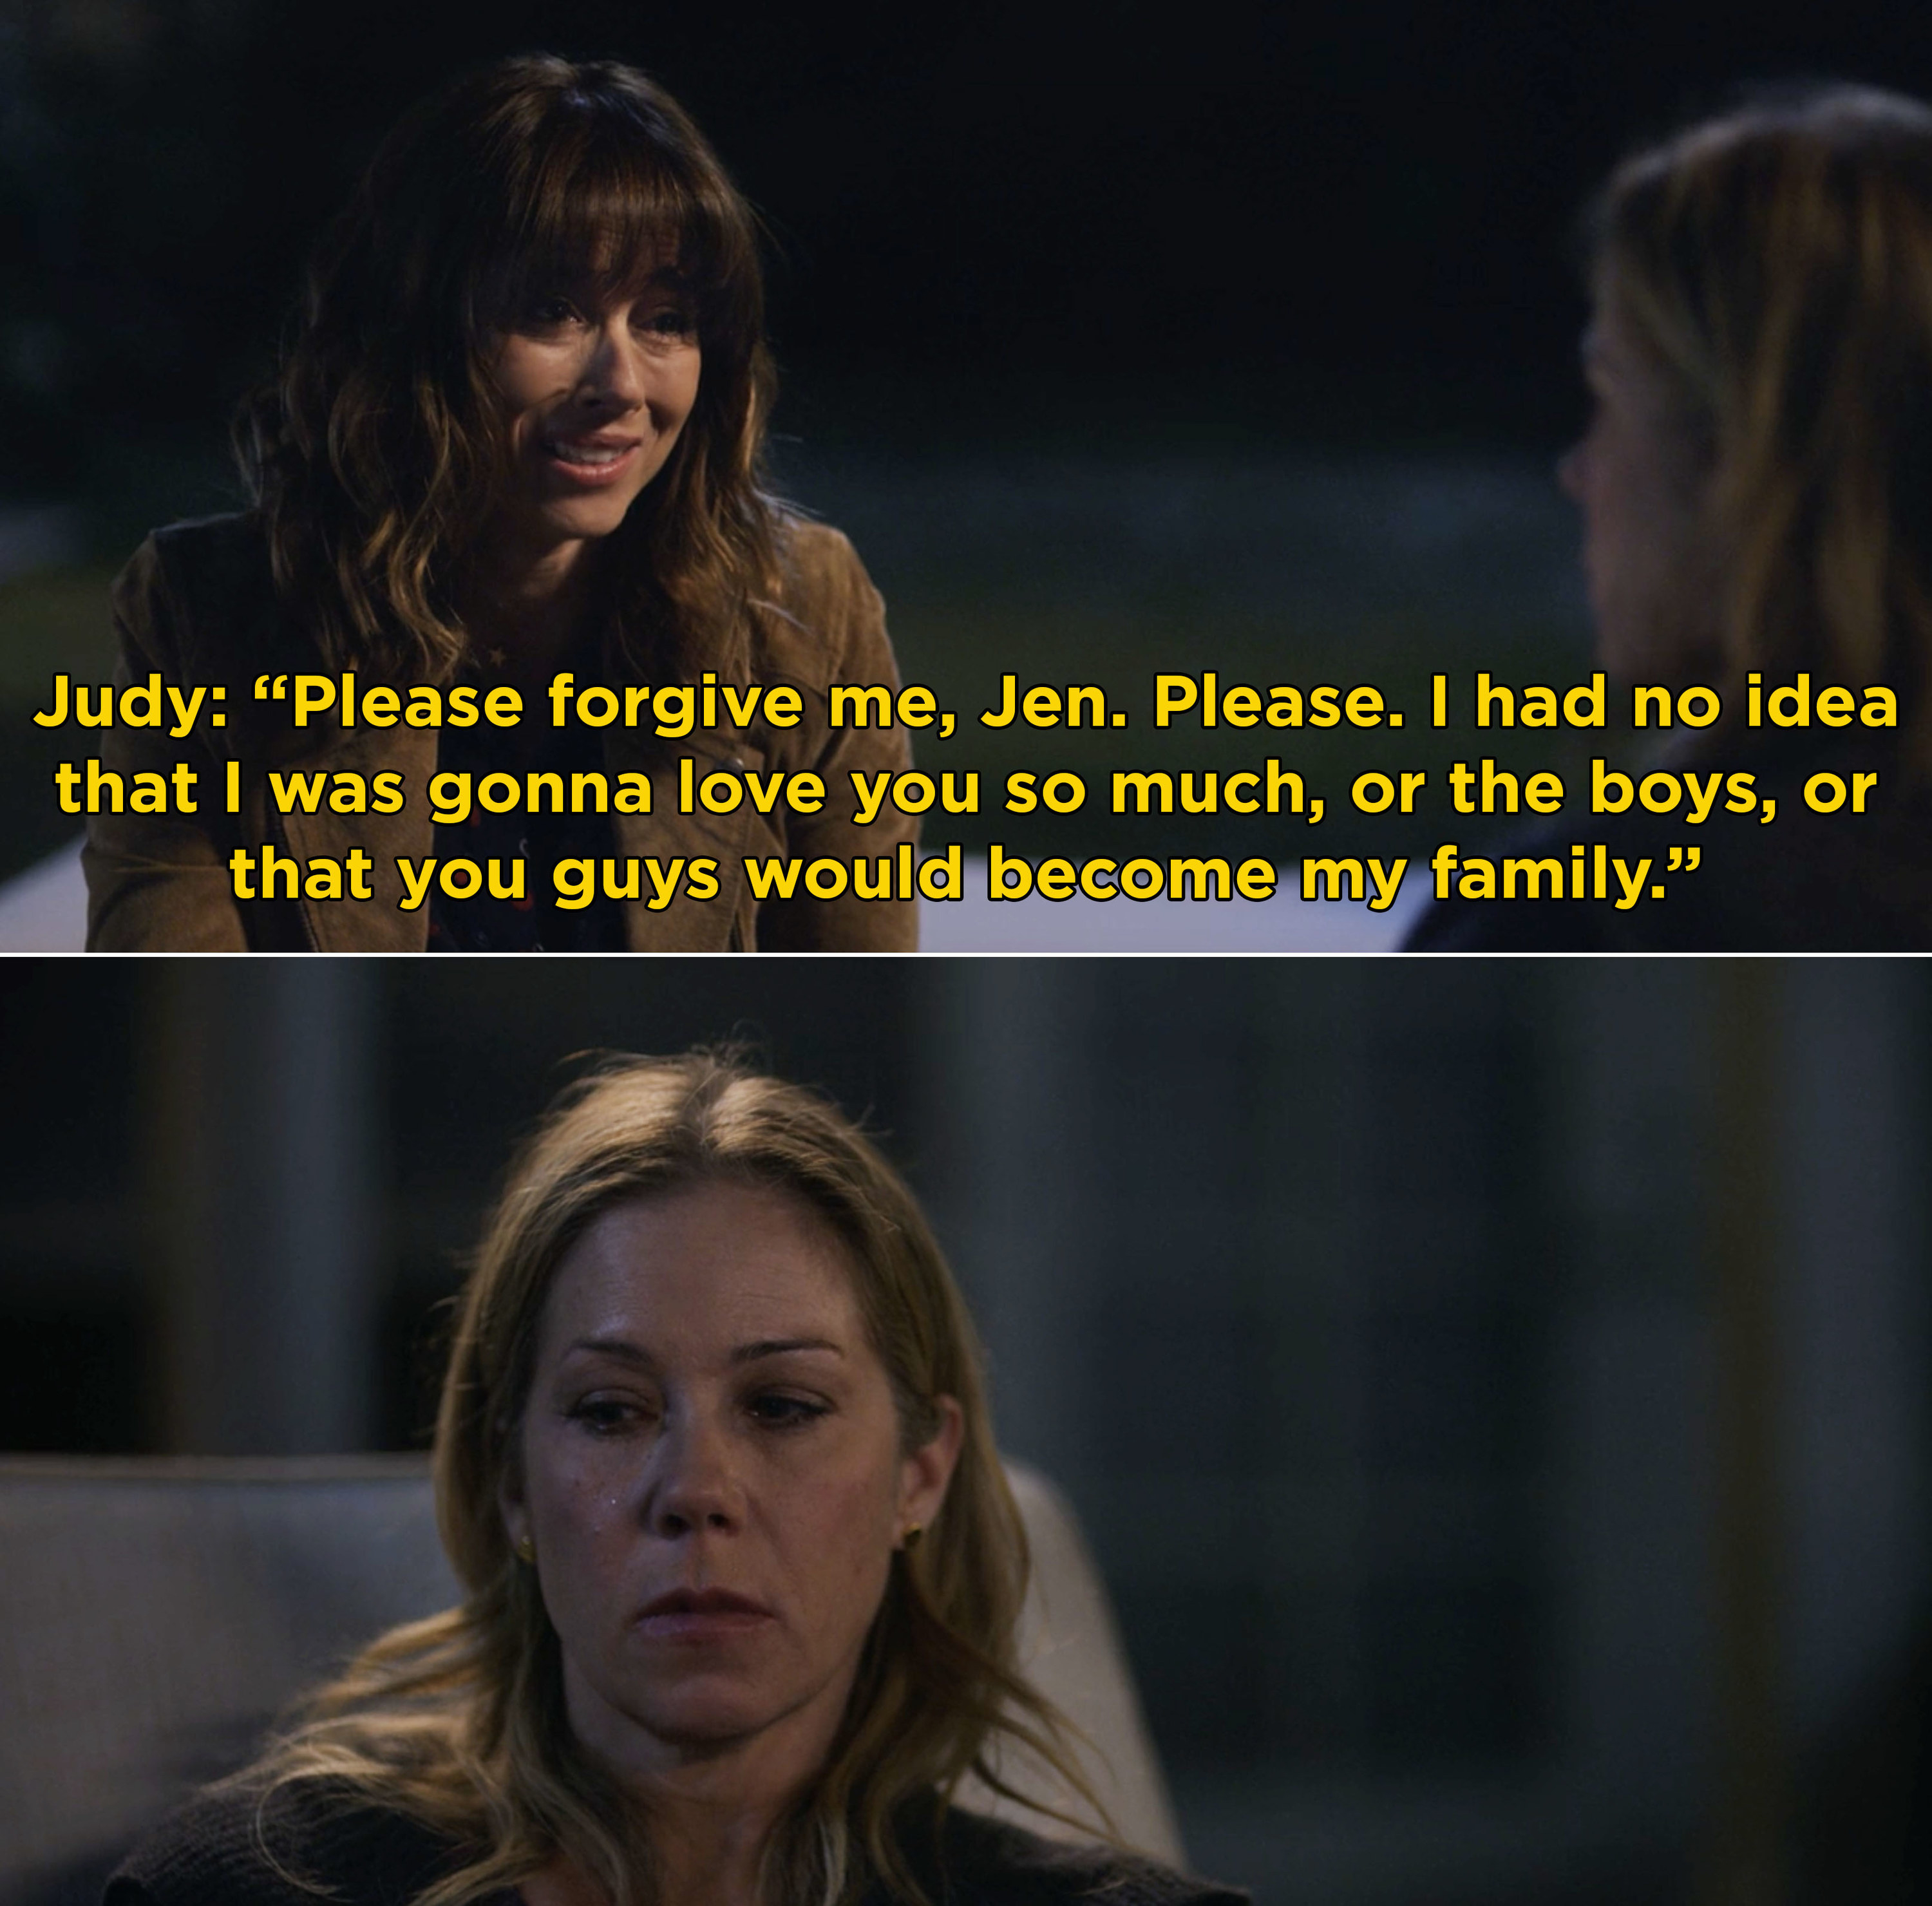 """Judy telling Jen, """"Please forgive me, Jen. I had no idea that I was gonna love you so much, or the boys, or that you guys would become my family"""""""